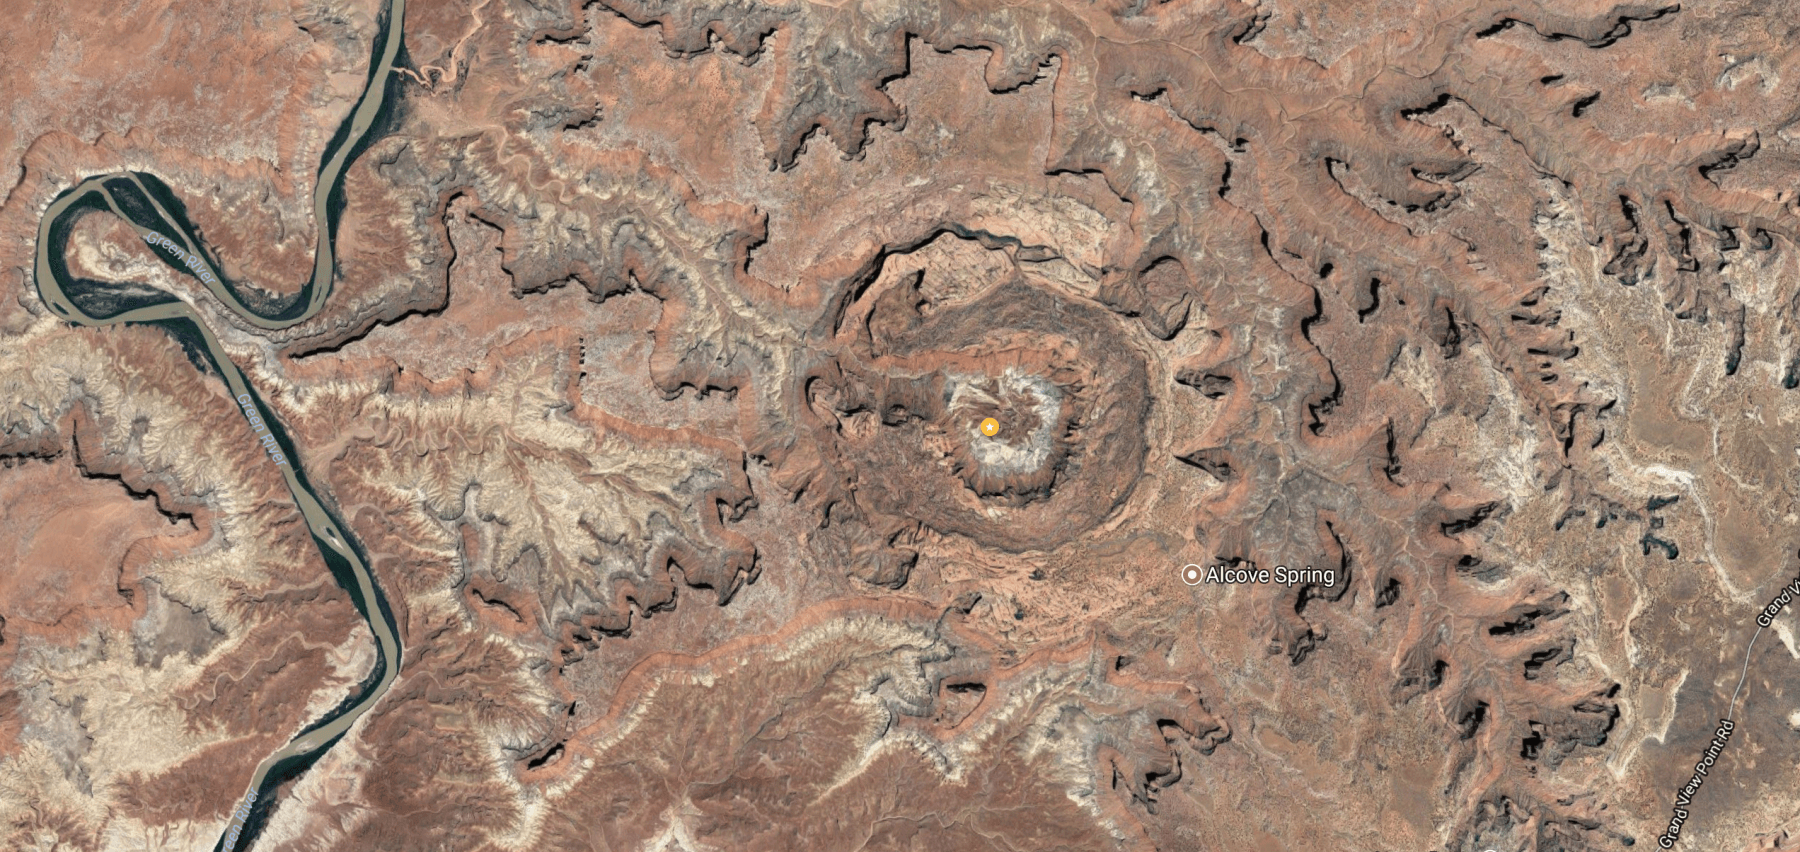 Upheaval Dome at Canyonlands National Park on Google Maps